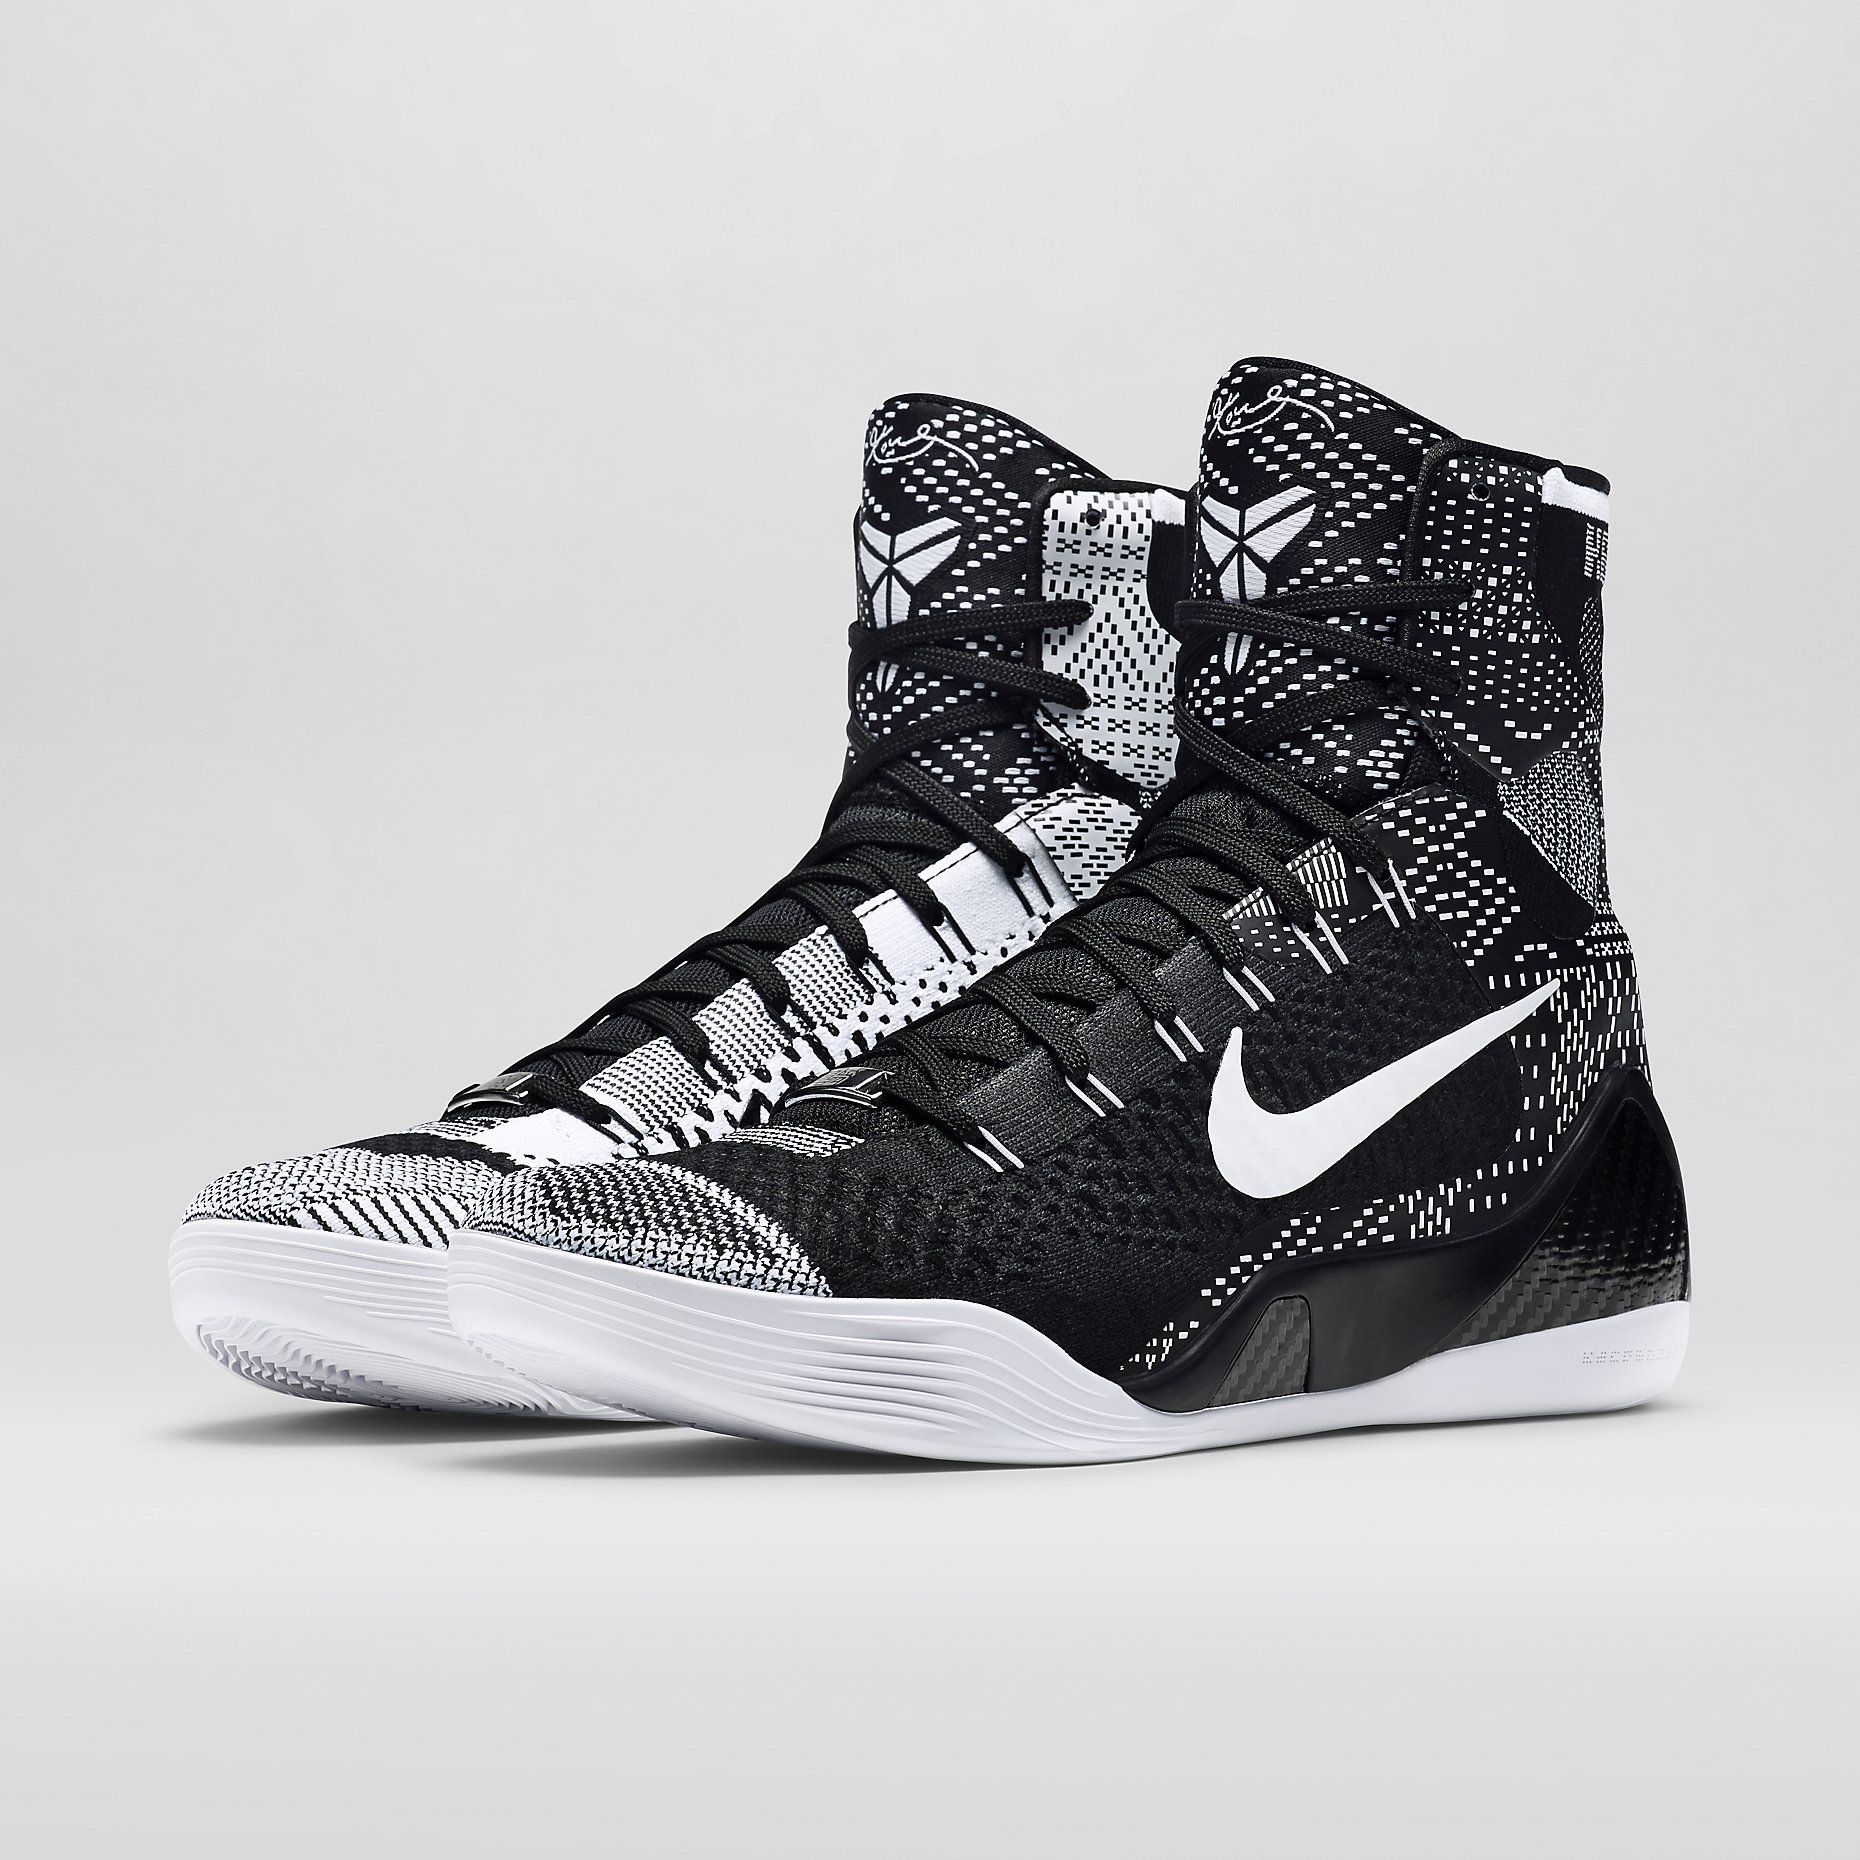 58aaaf724340 Kobe 9 Elite BHM Men s Basketball Shoe. Nike Store UK